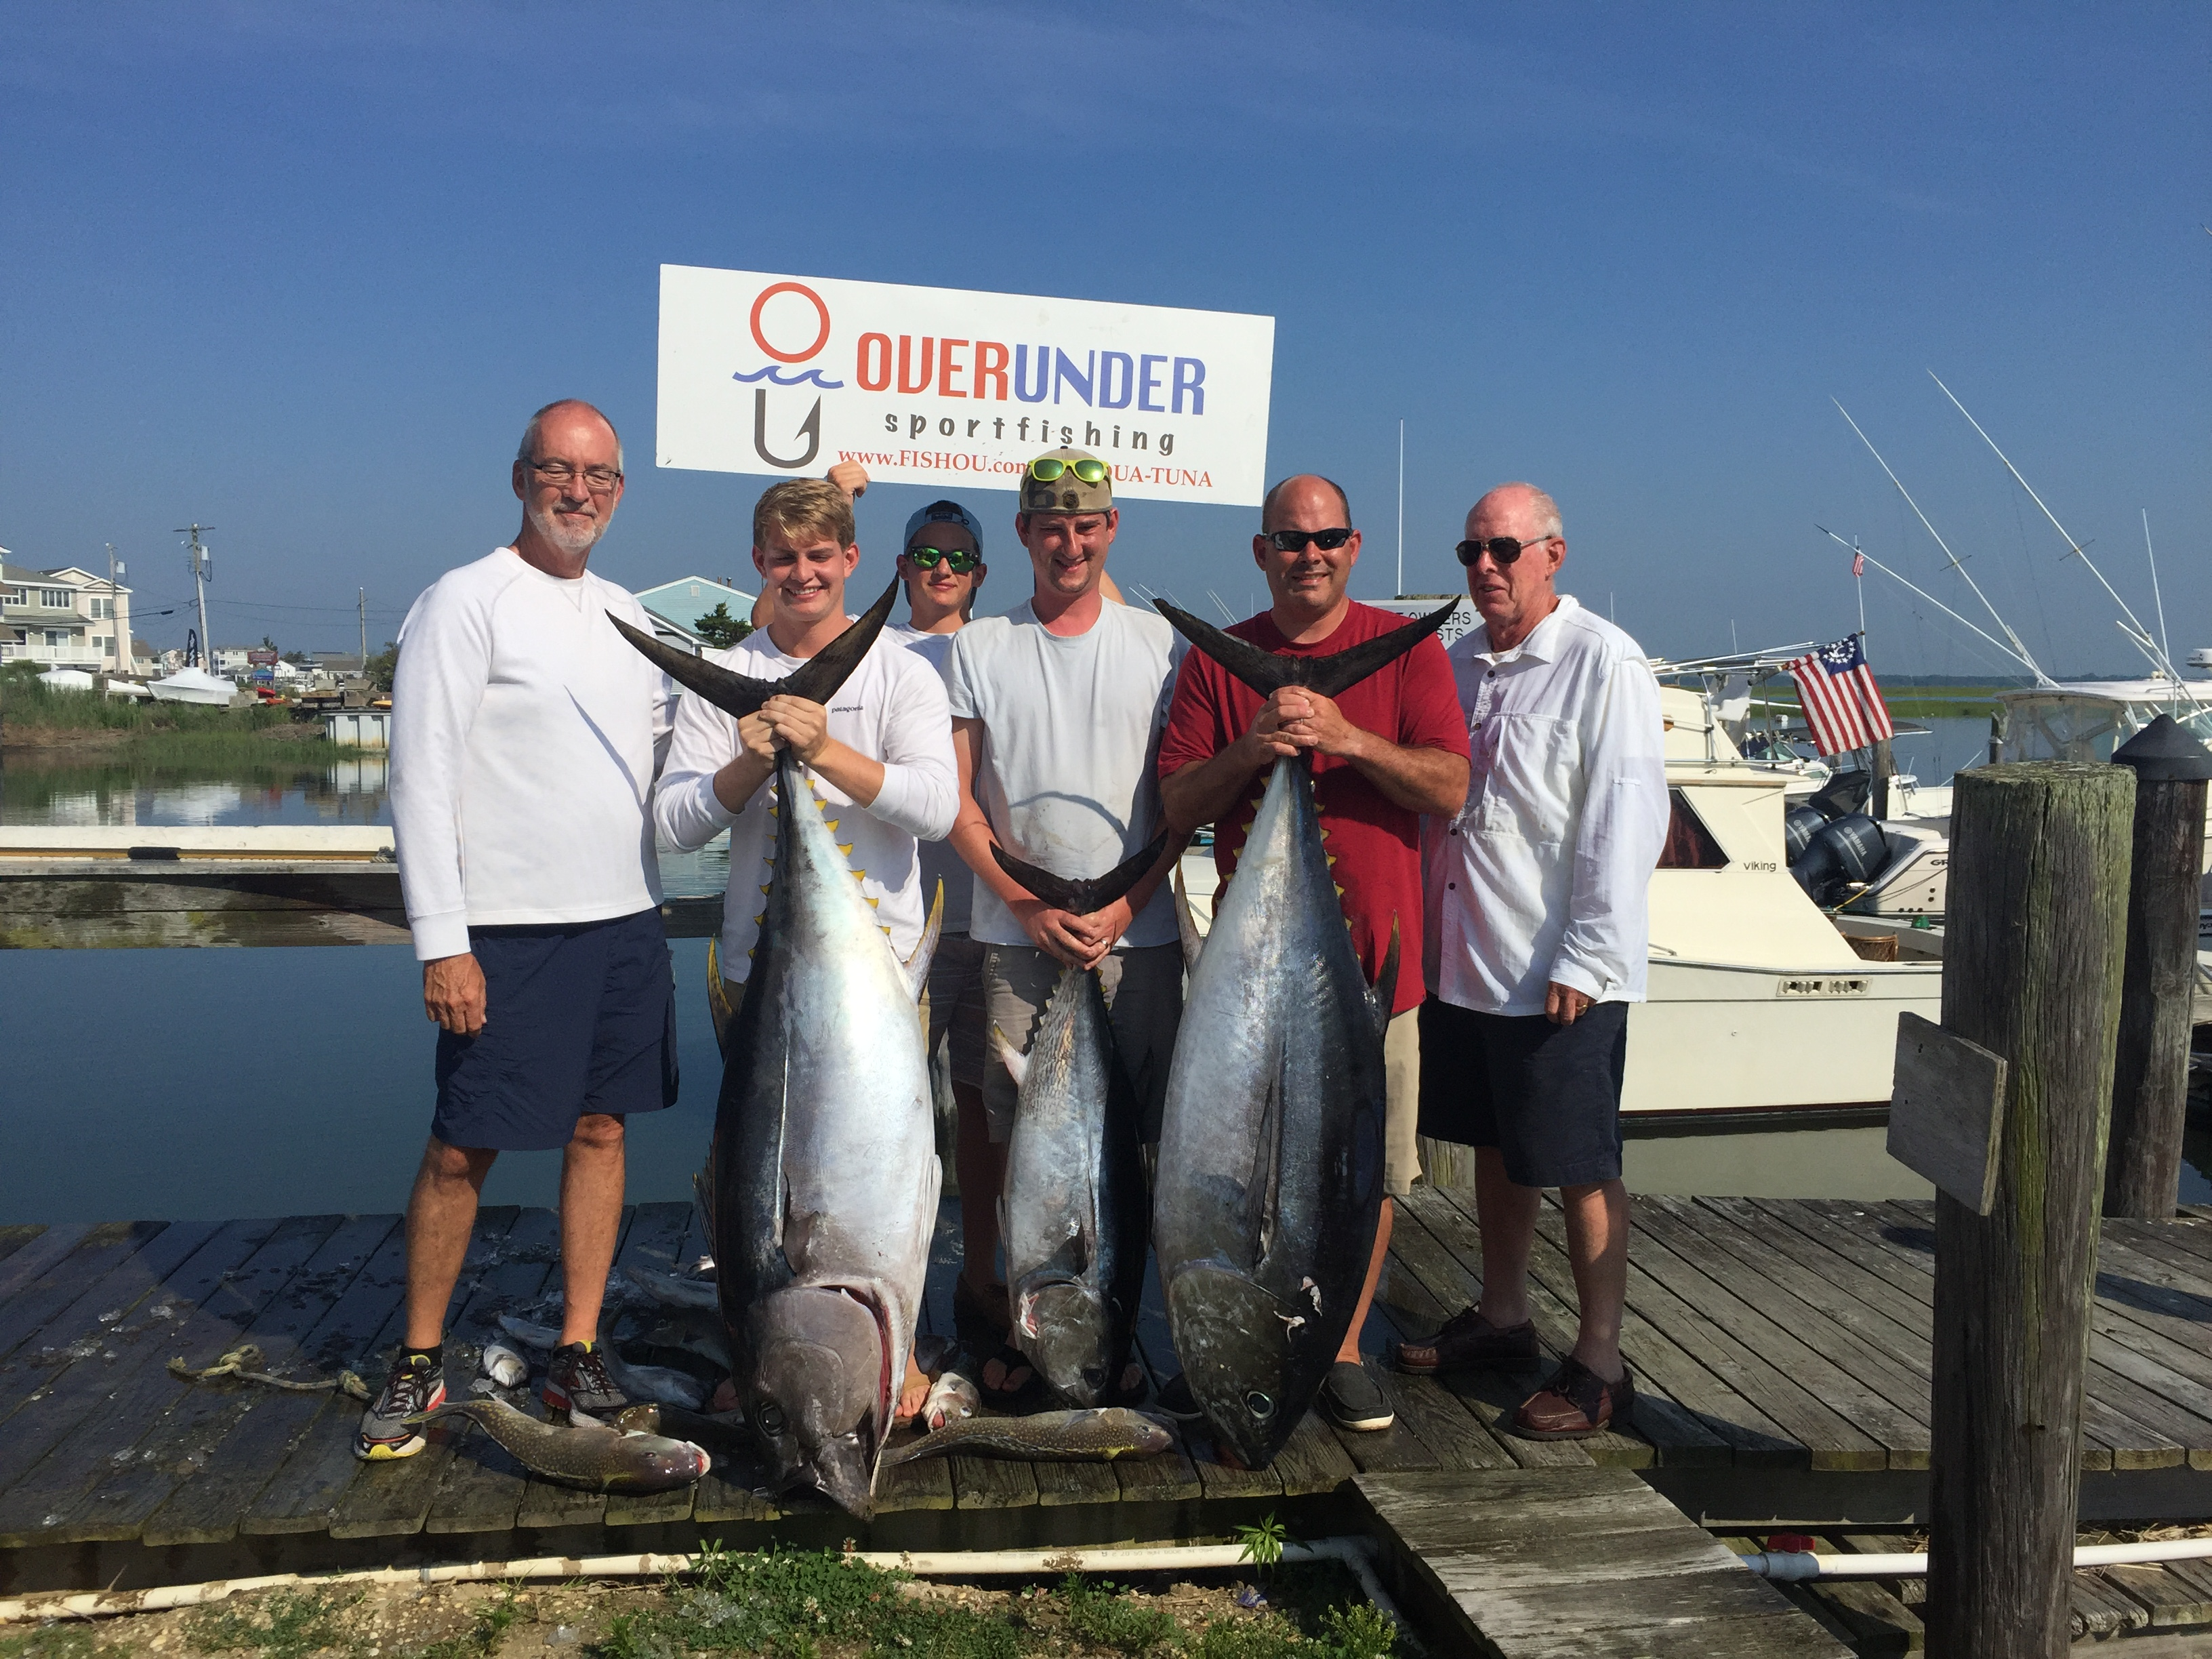 Nj salt fish 2016 07 09 over under charters cape may for Nj fishing reports now